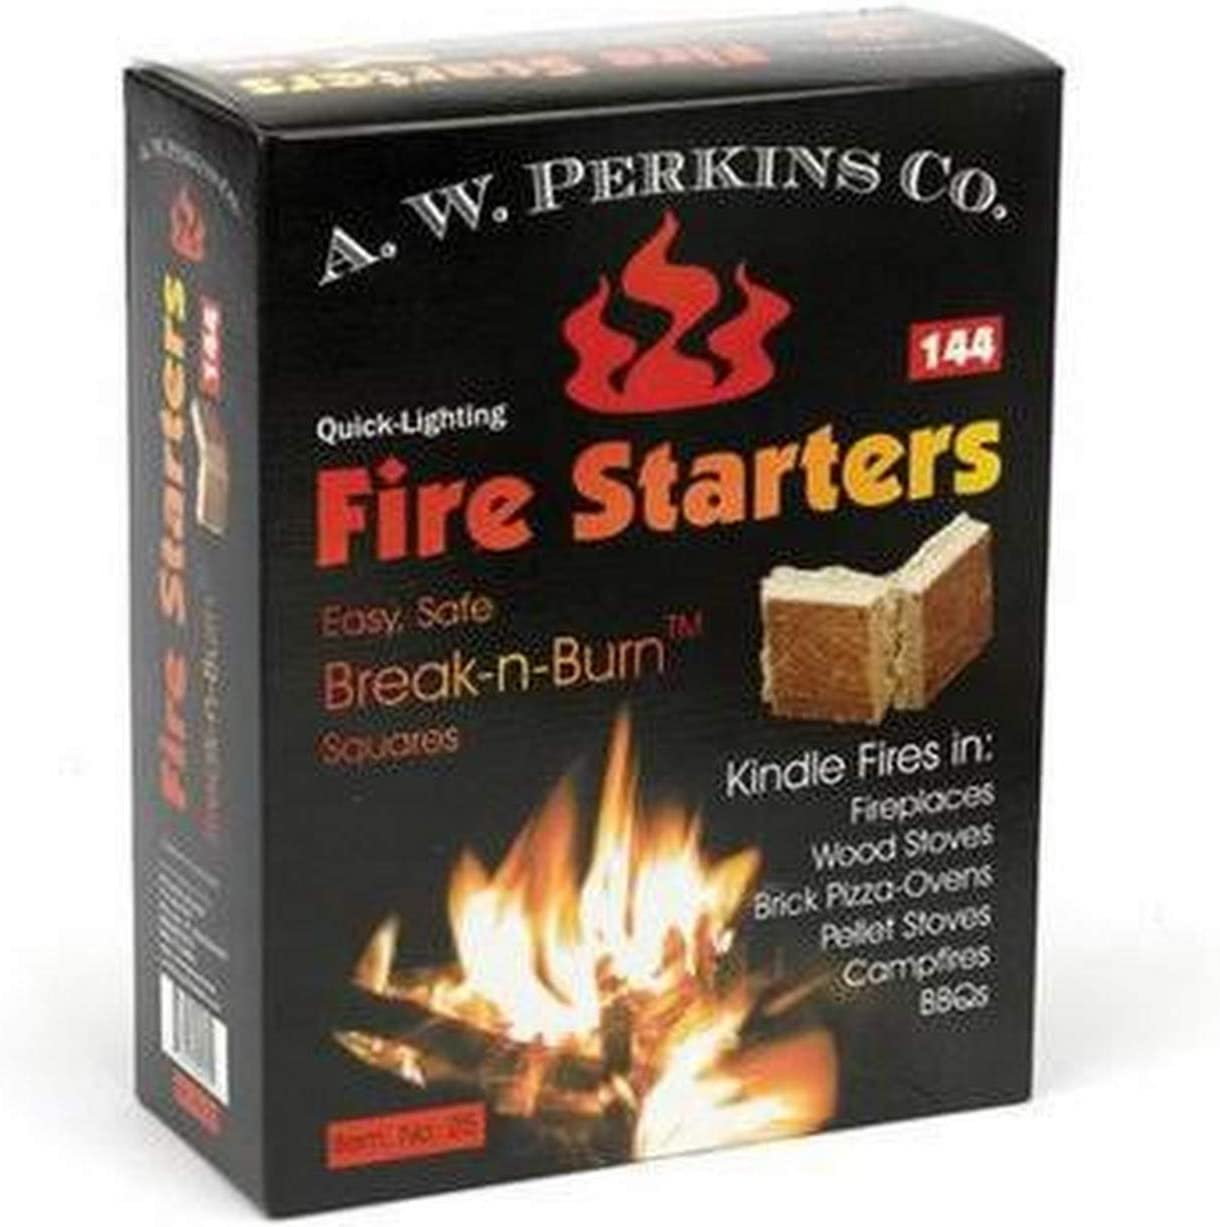 Seymour Fire Max 71% OFF Blox Firewood Starters and Charcoal Outstanding